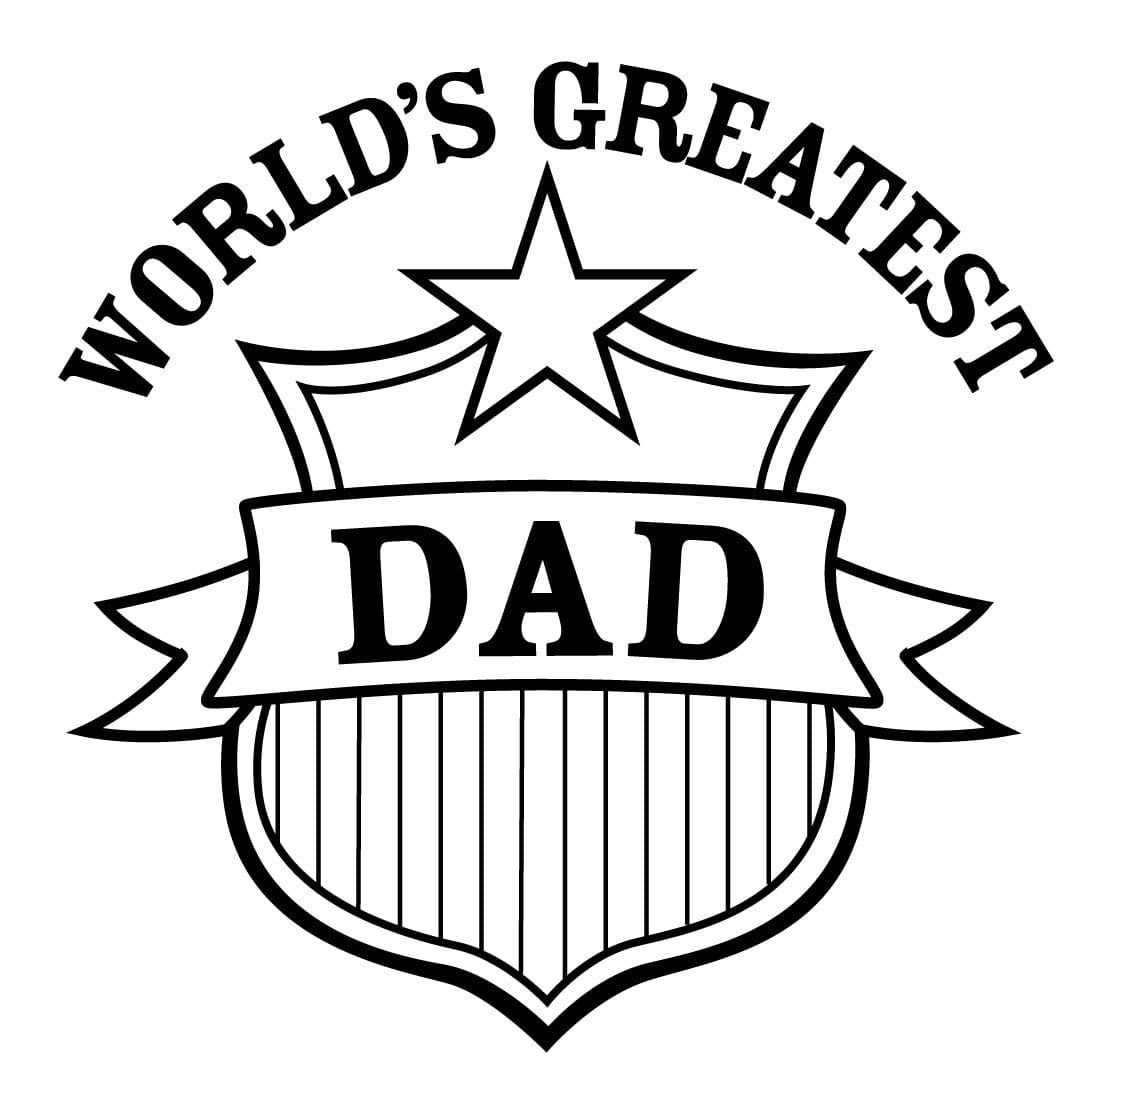 Happy Birthday Dad Coloring Cards Www Topsimages Com